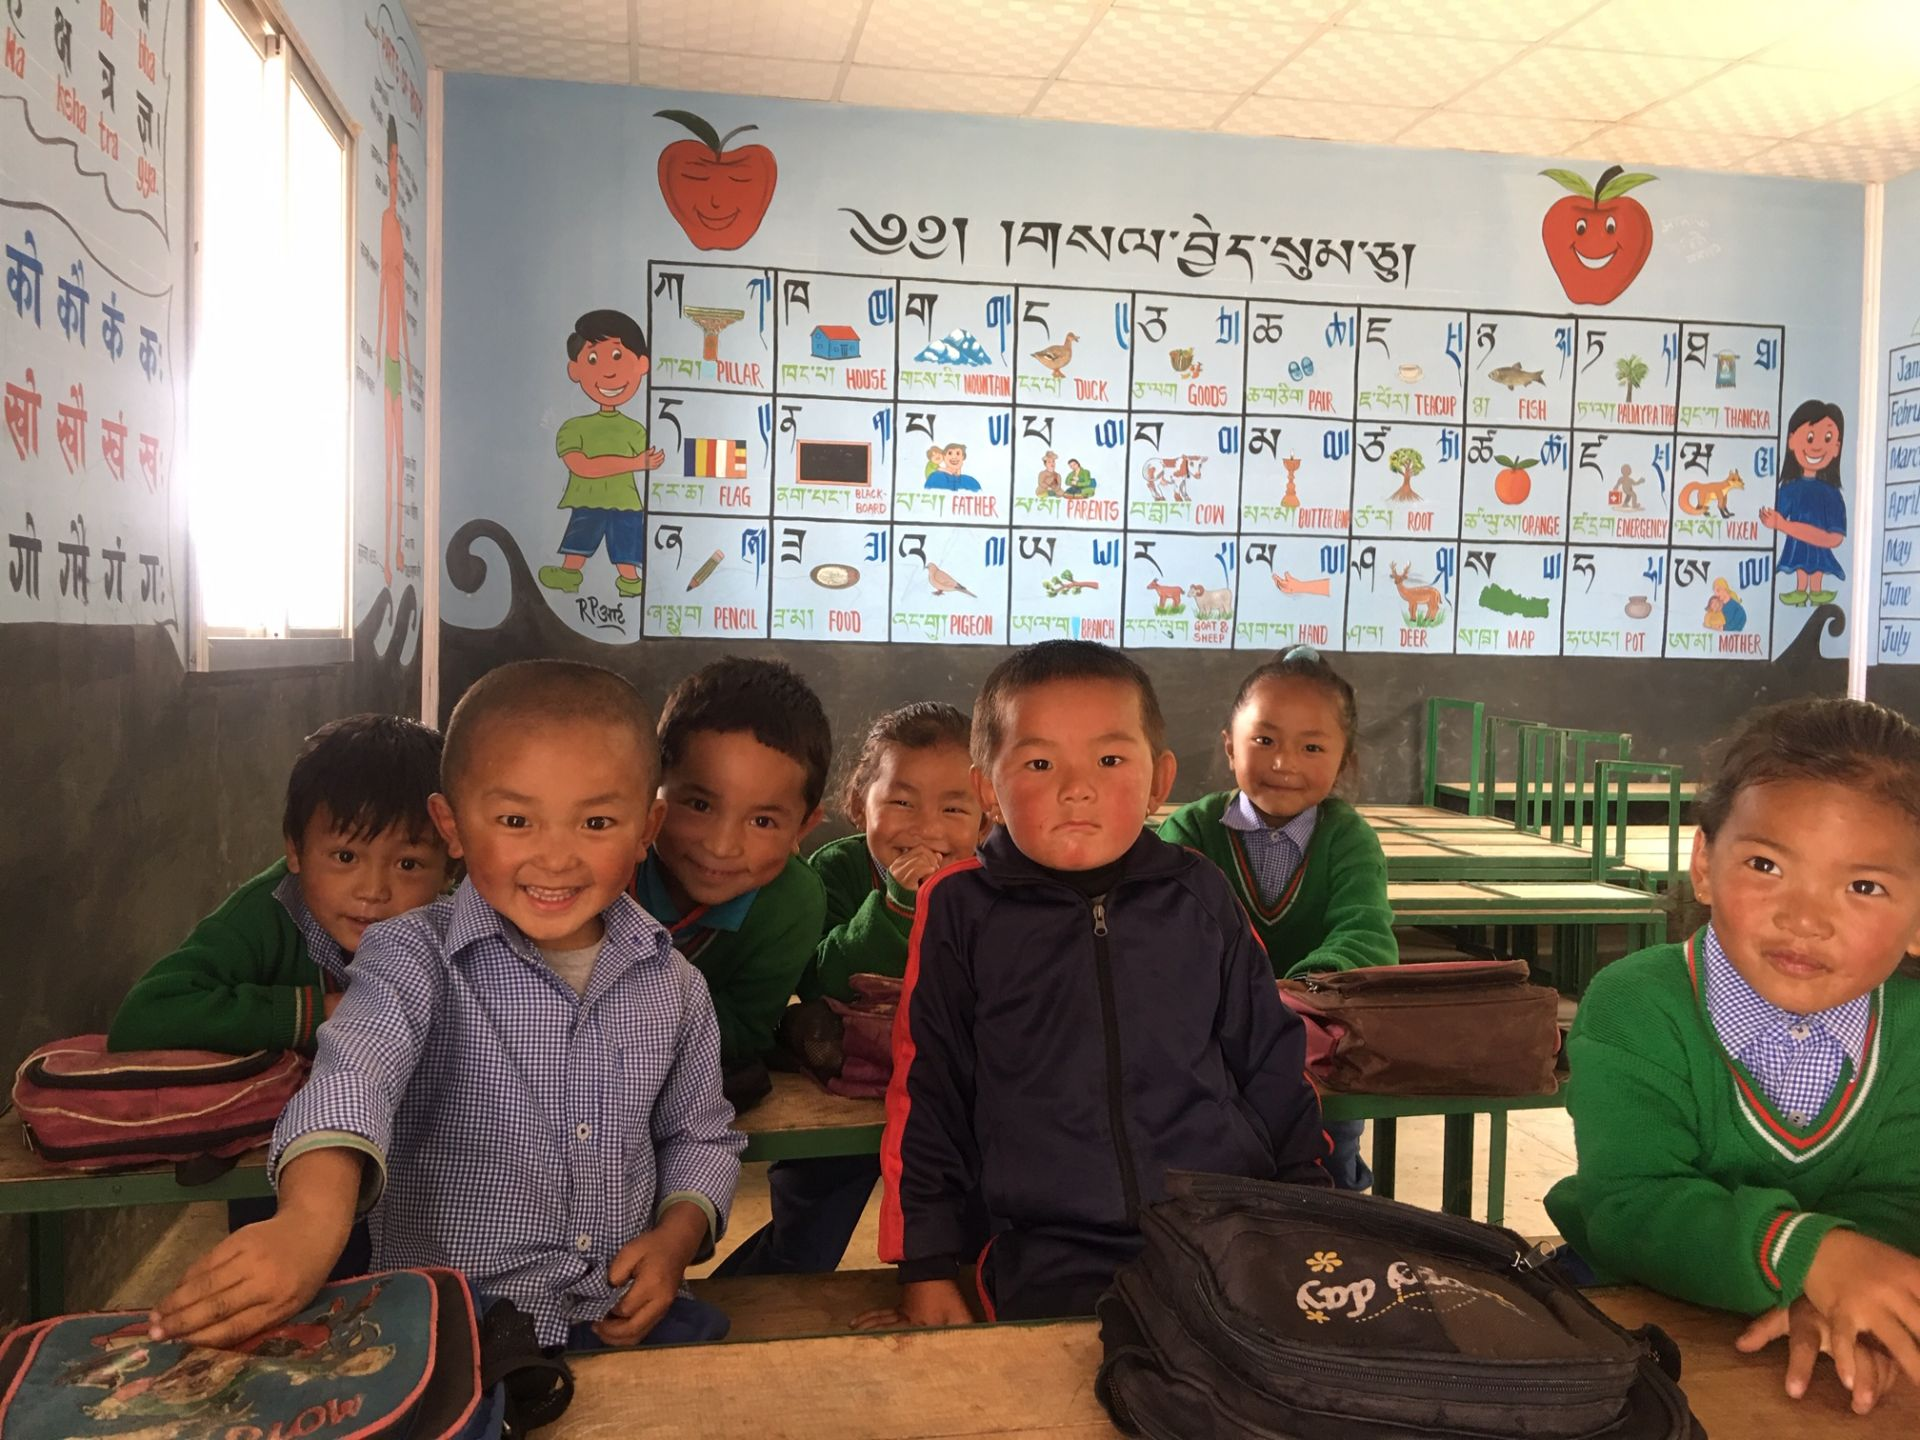 Support to Sangag Dechholing Gonpa School, Nepal